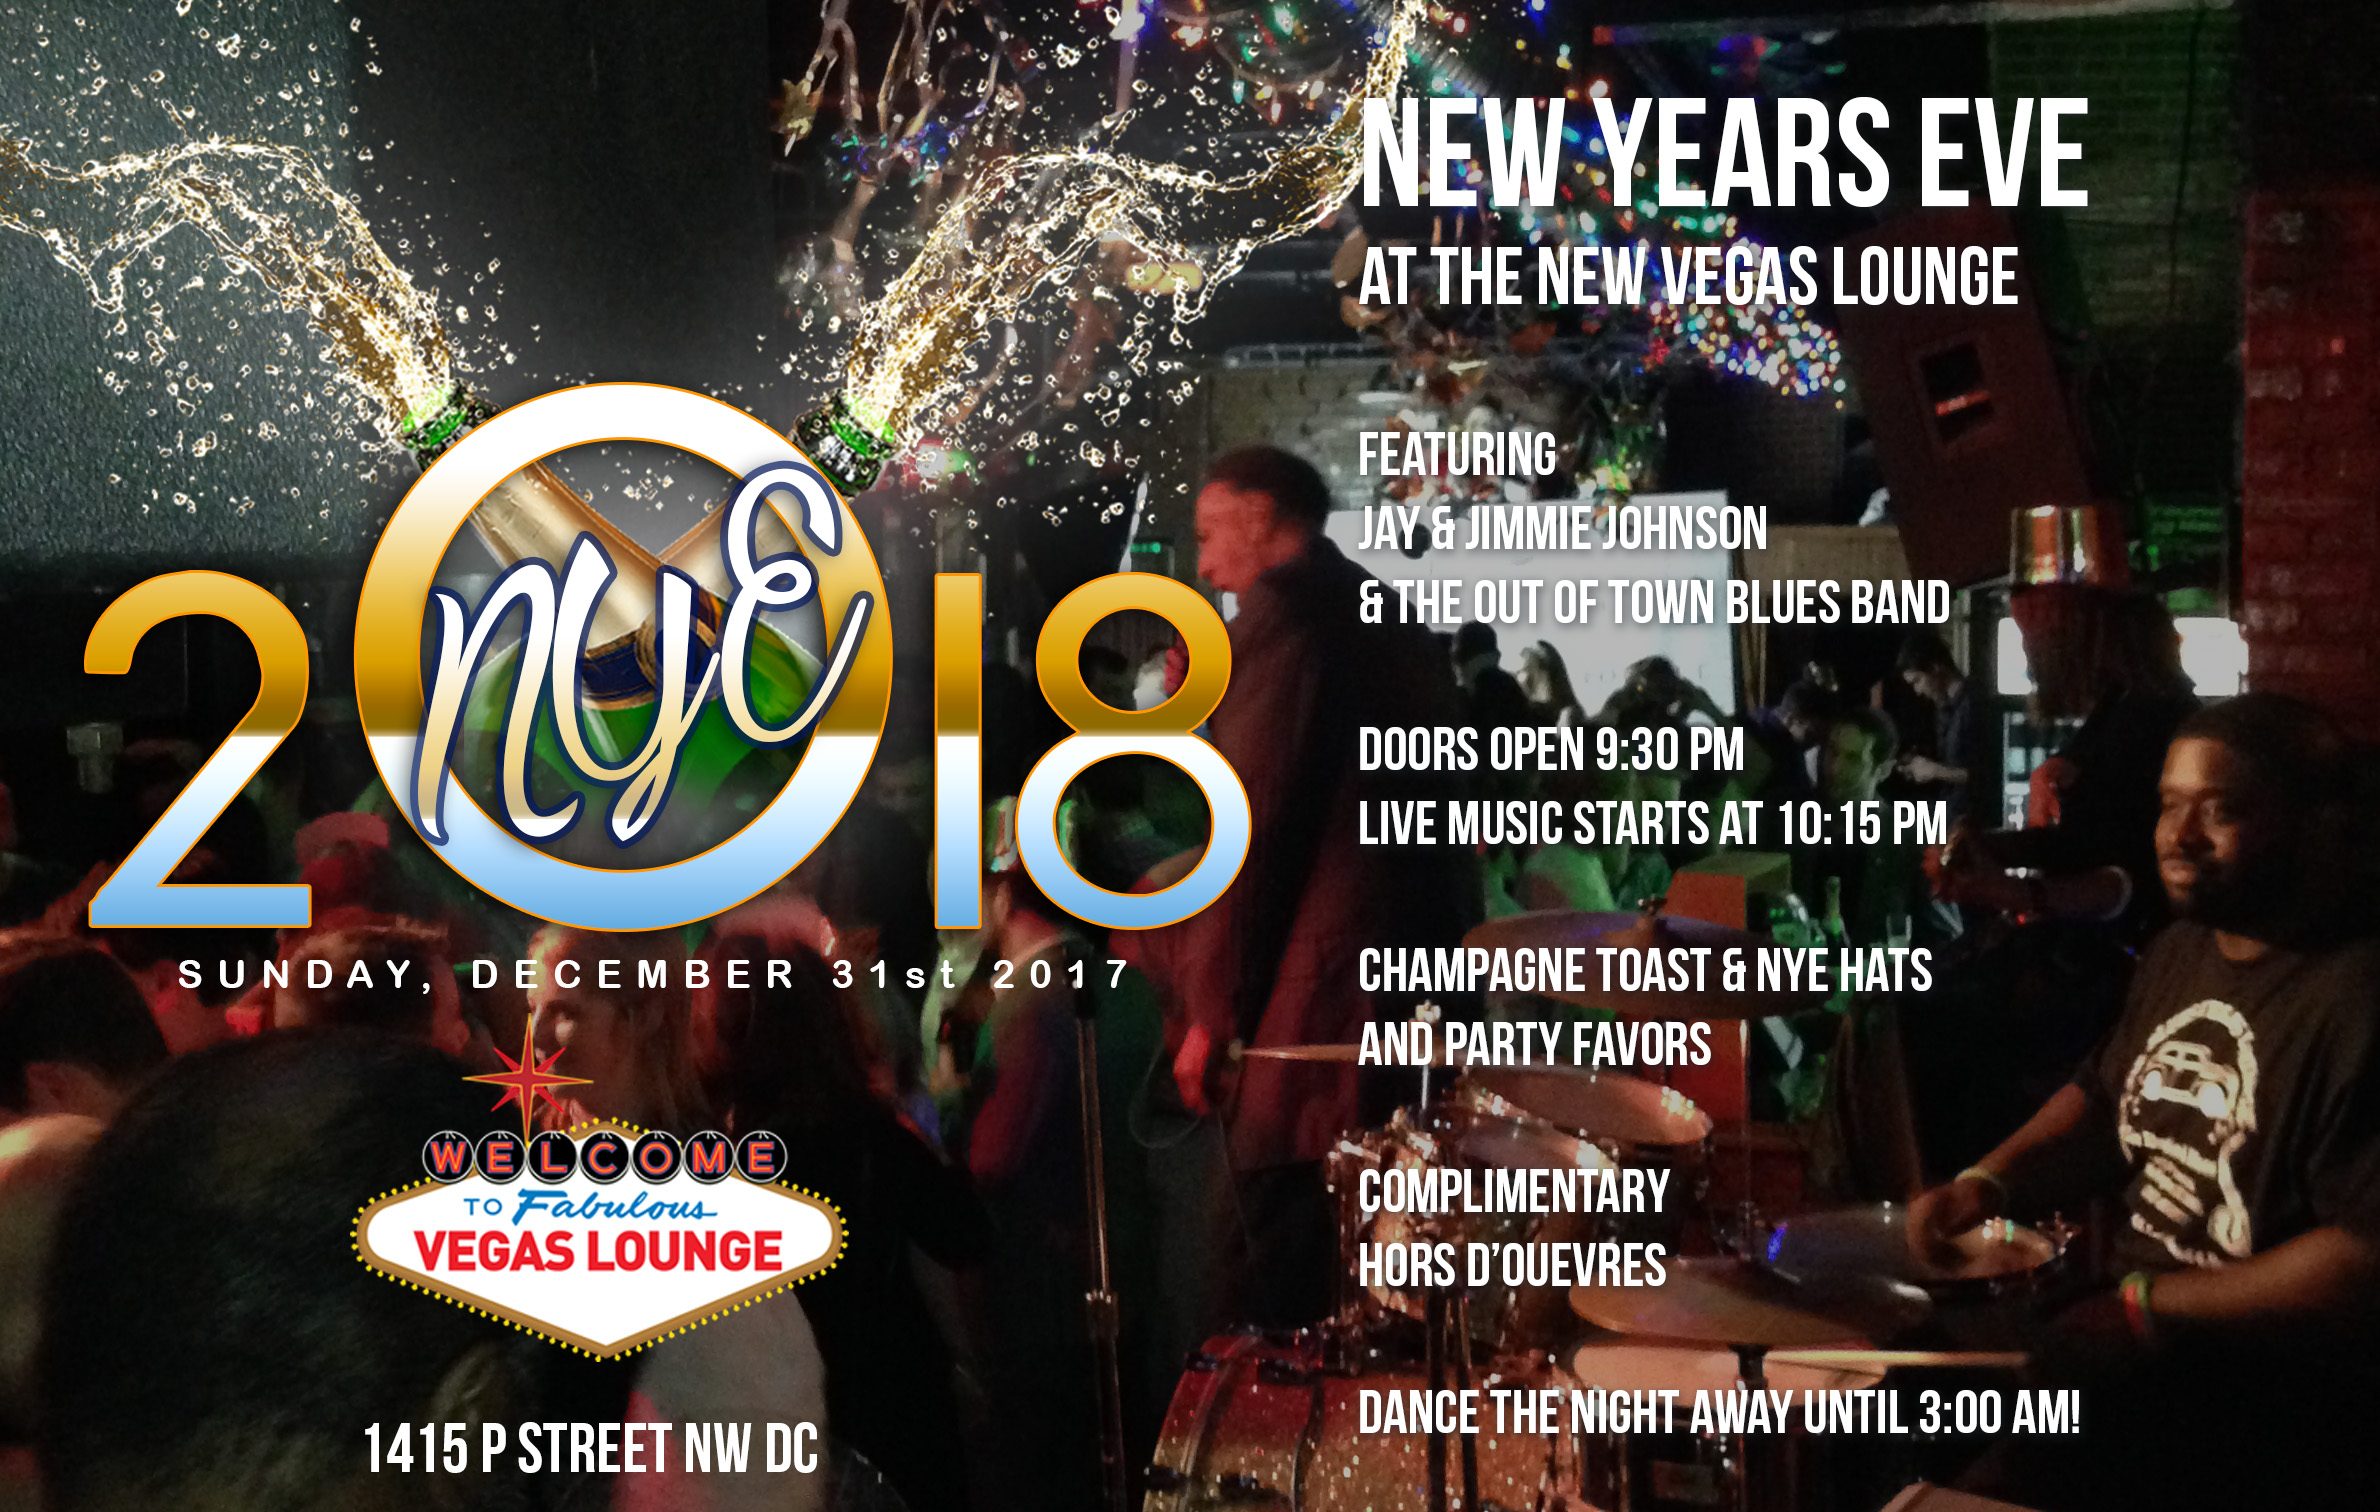 GET TICKETS FOR NEW YEARS EVE 2016